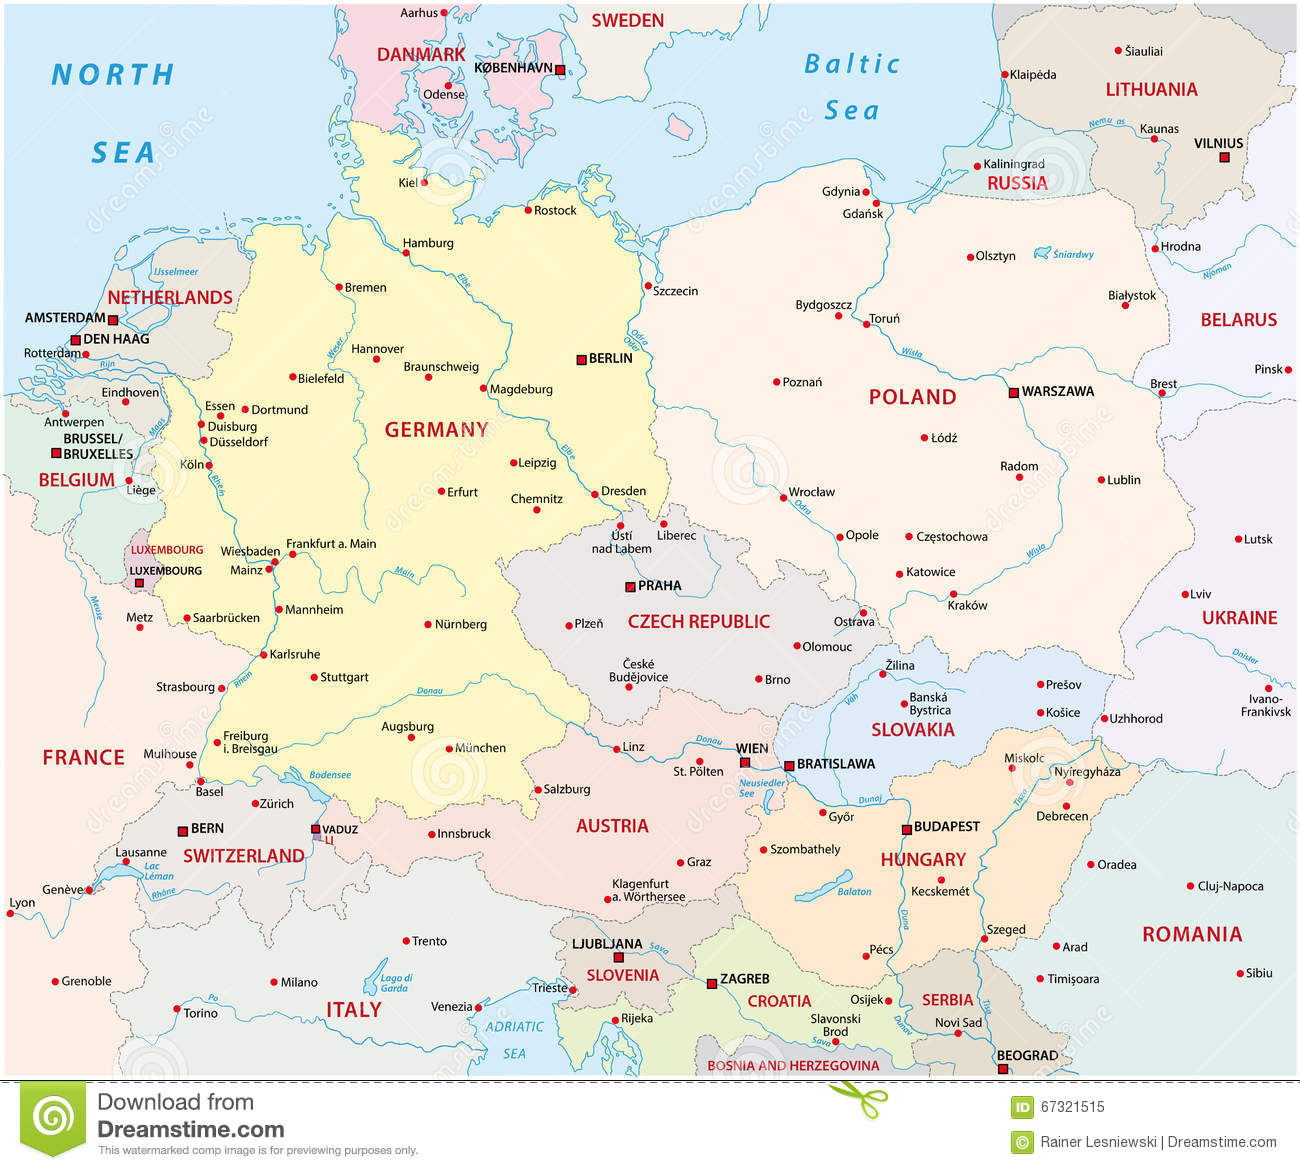 Central europe map stock illustration. Illustration of europe - 67321515